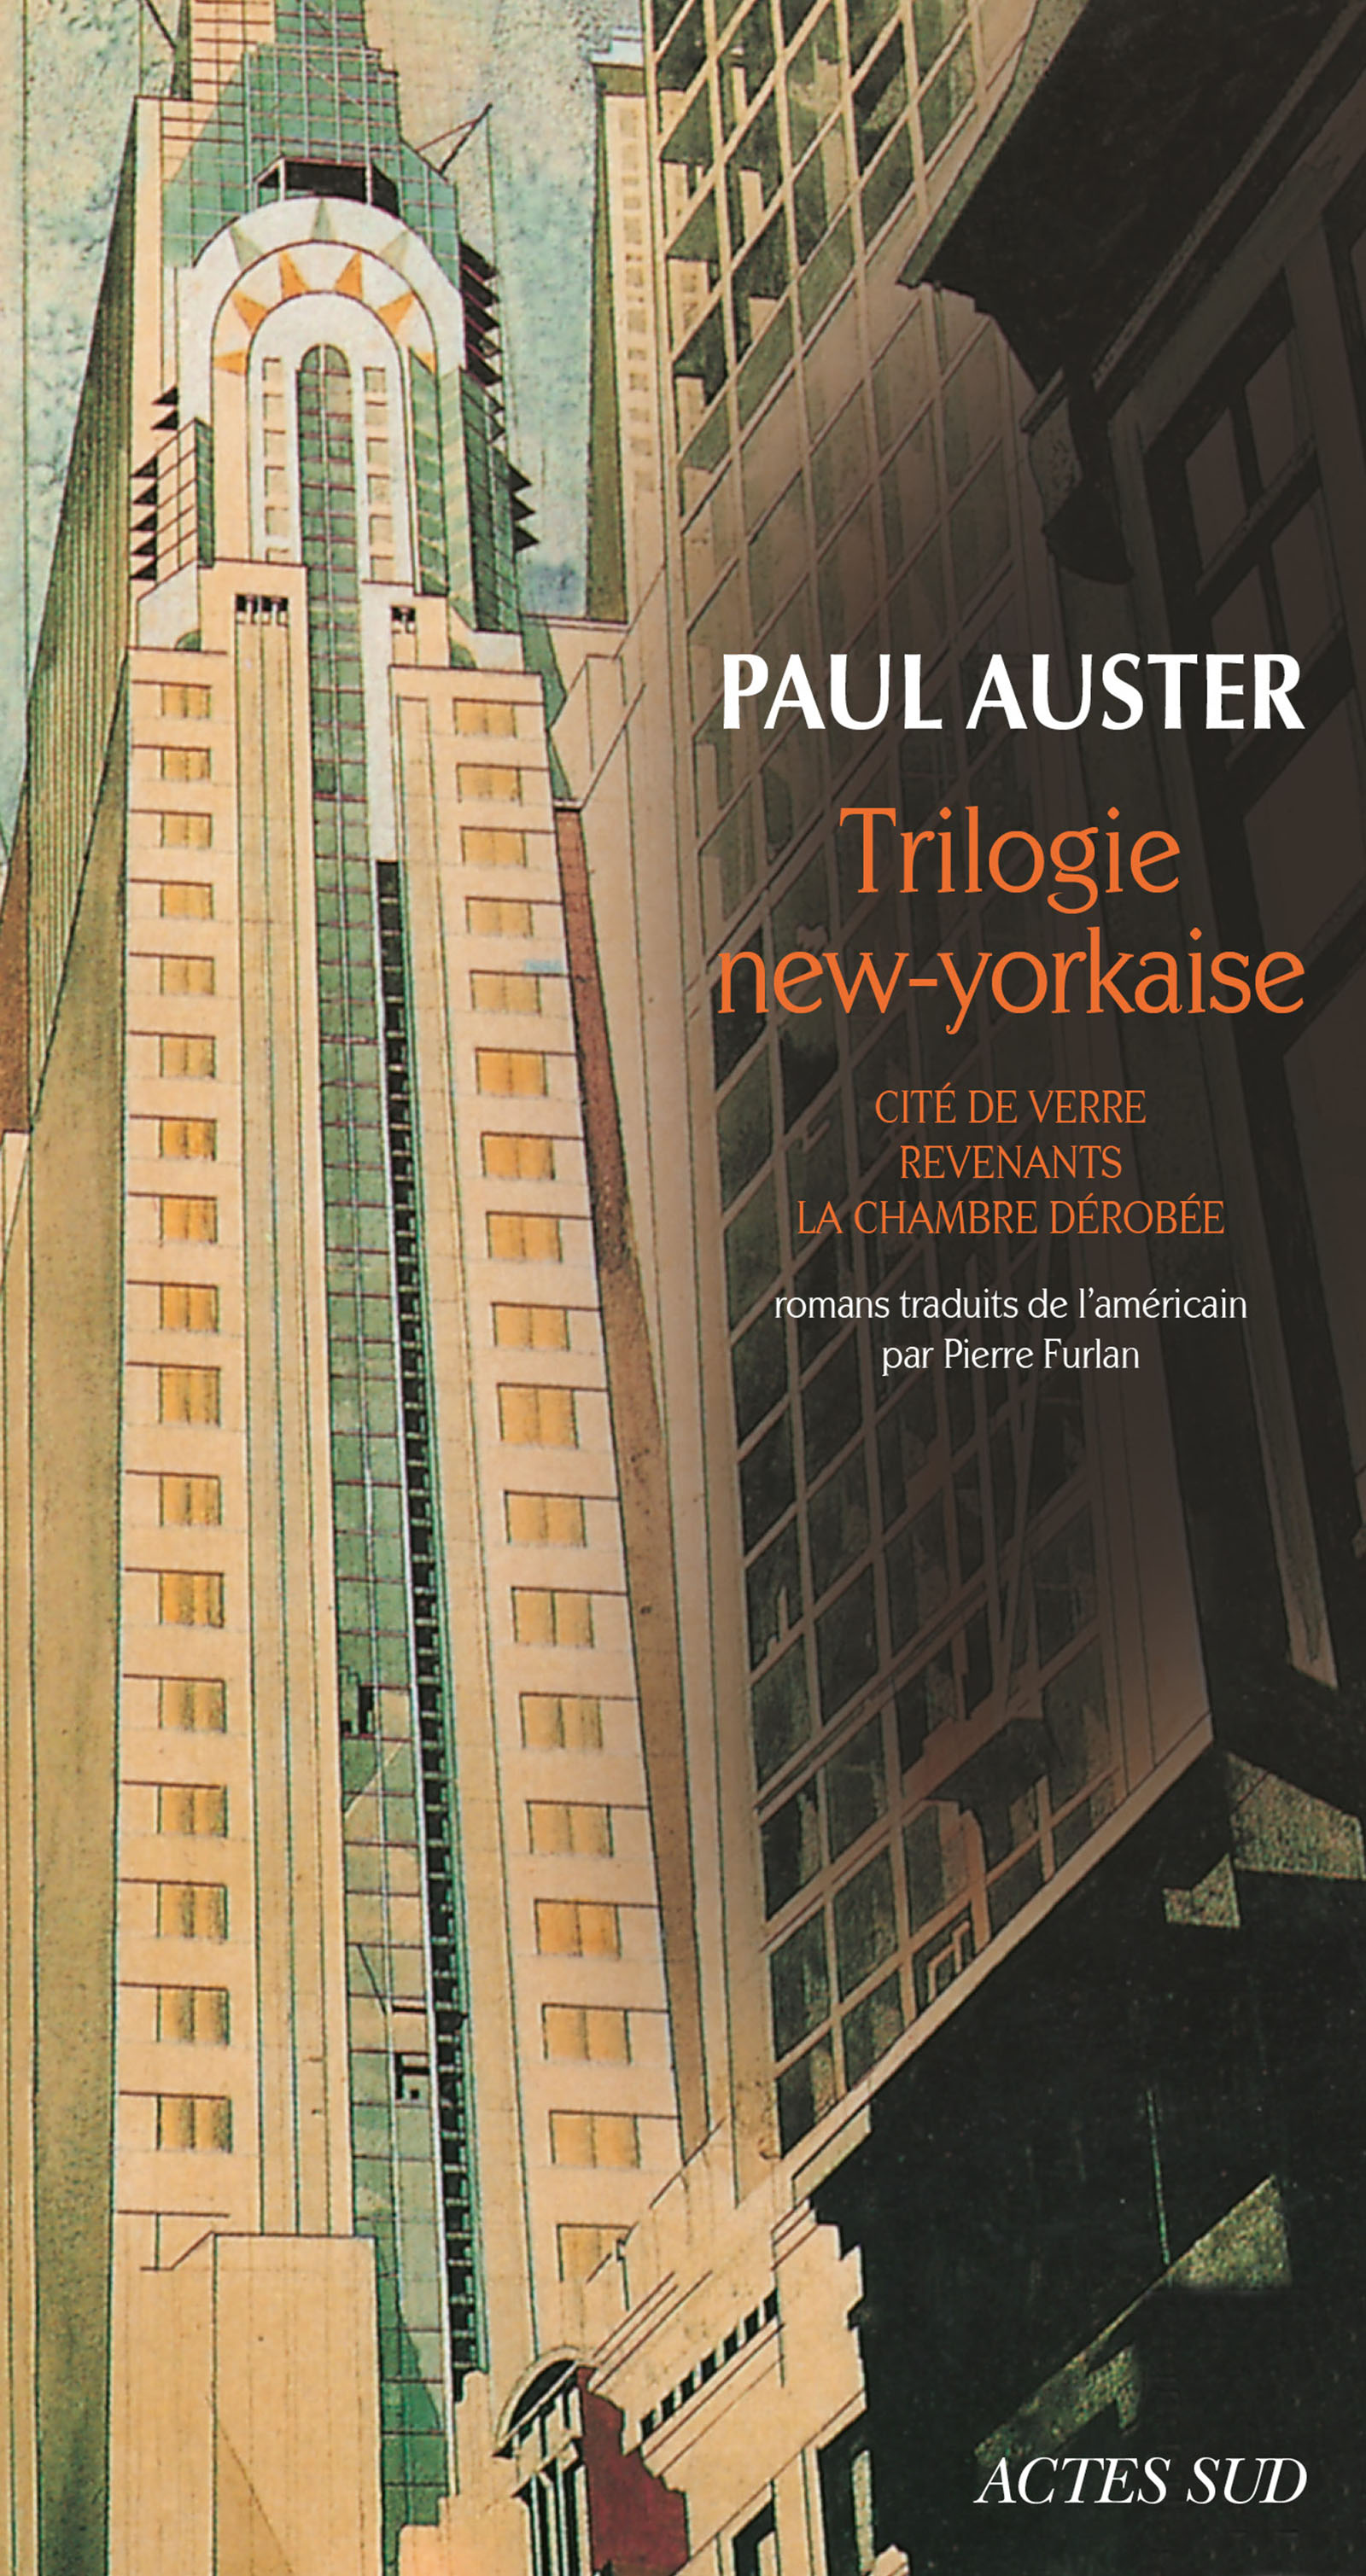 Couverture : Trilogie new-yorkaise Paul Auster